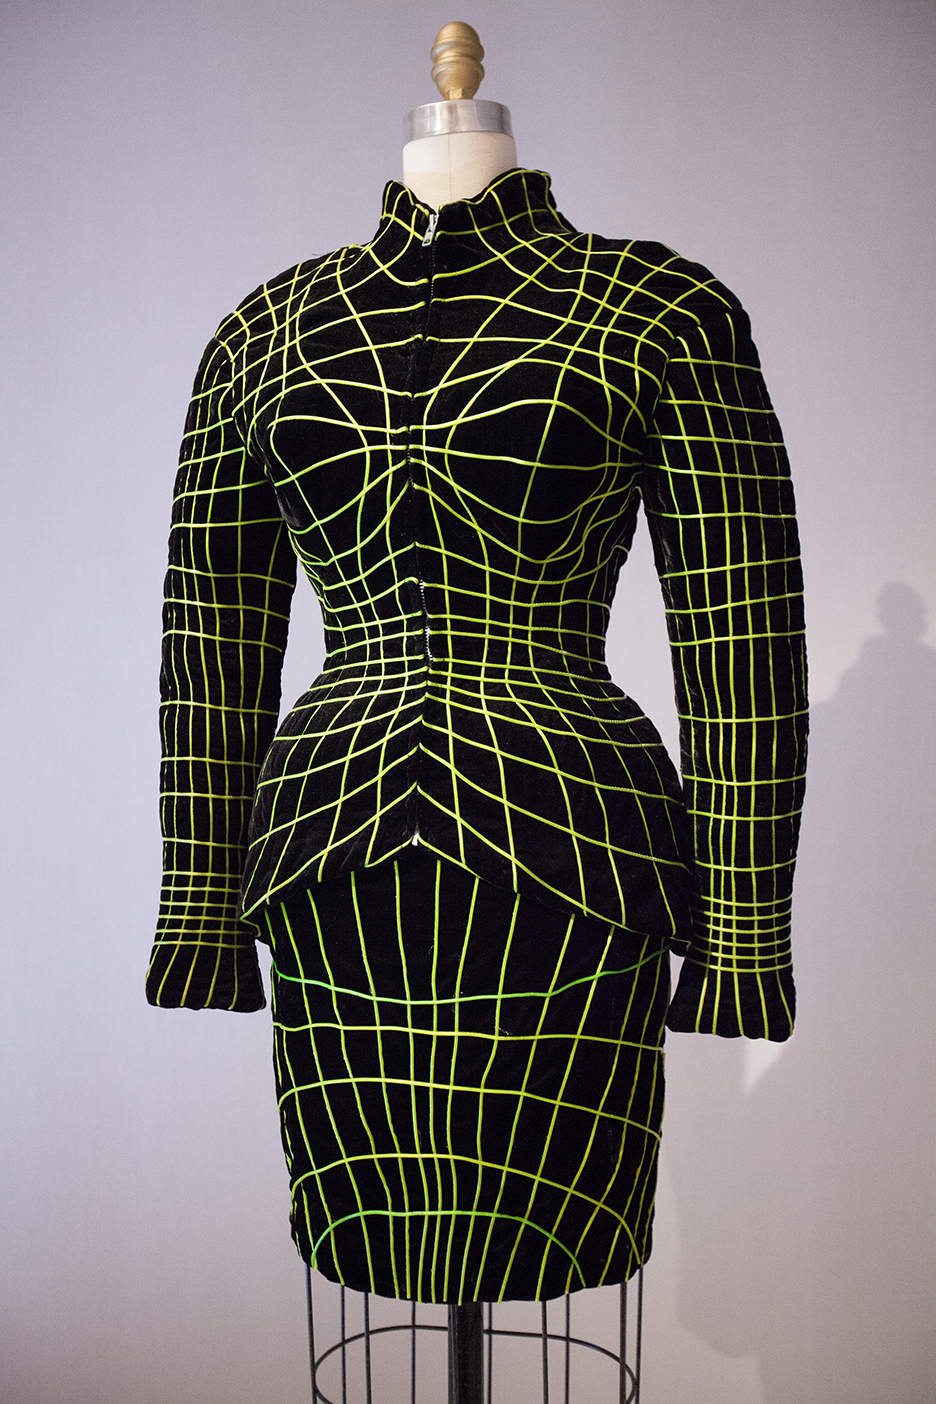 I call this the the Matrix dress!  NEON DANS LA NUIT SUIT 1990/91 hand embroidered with fluorescent stripes